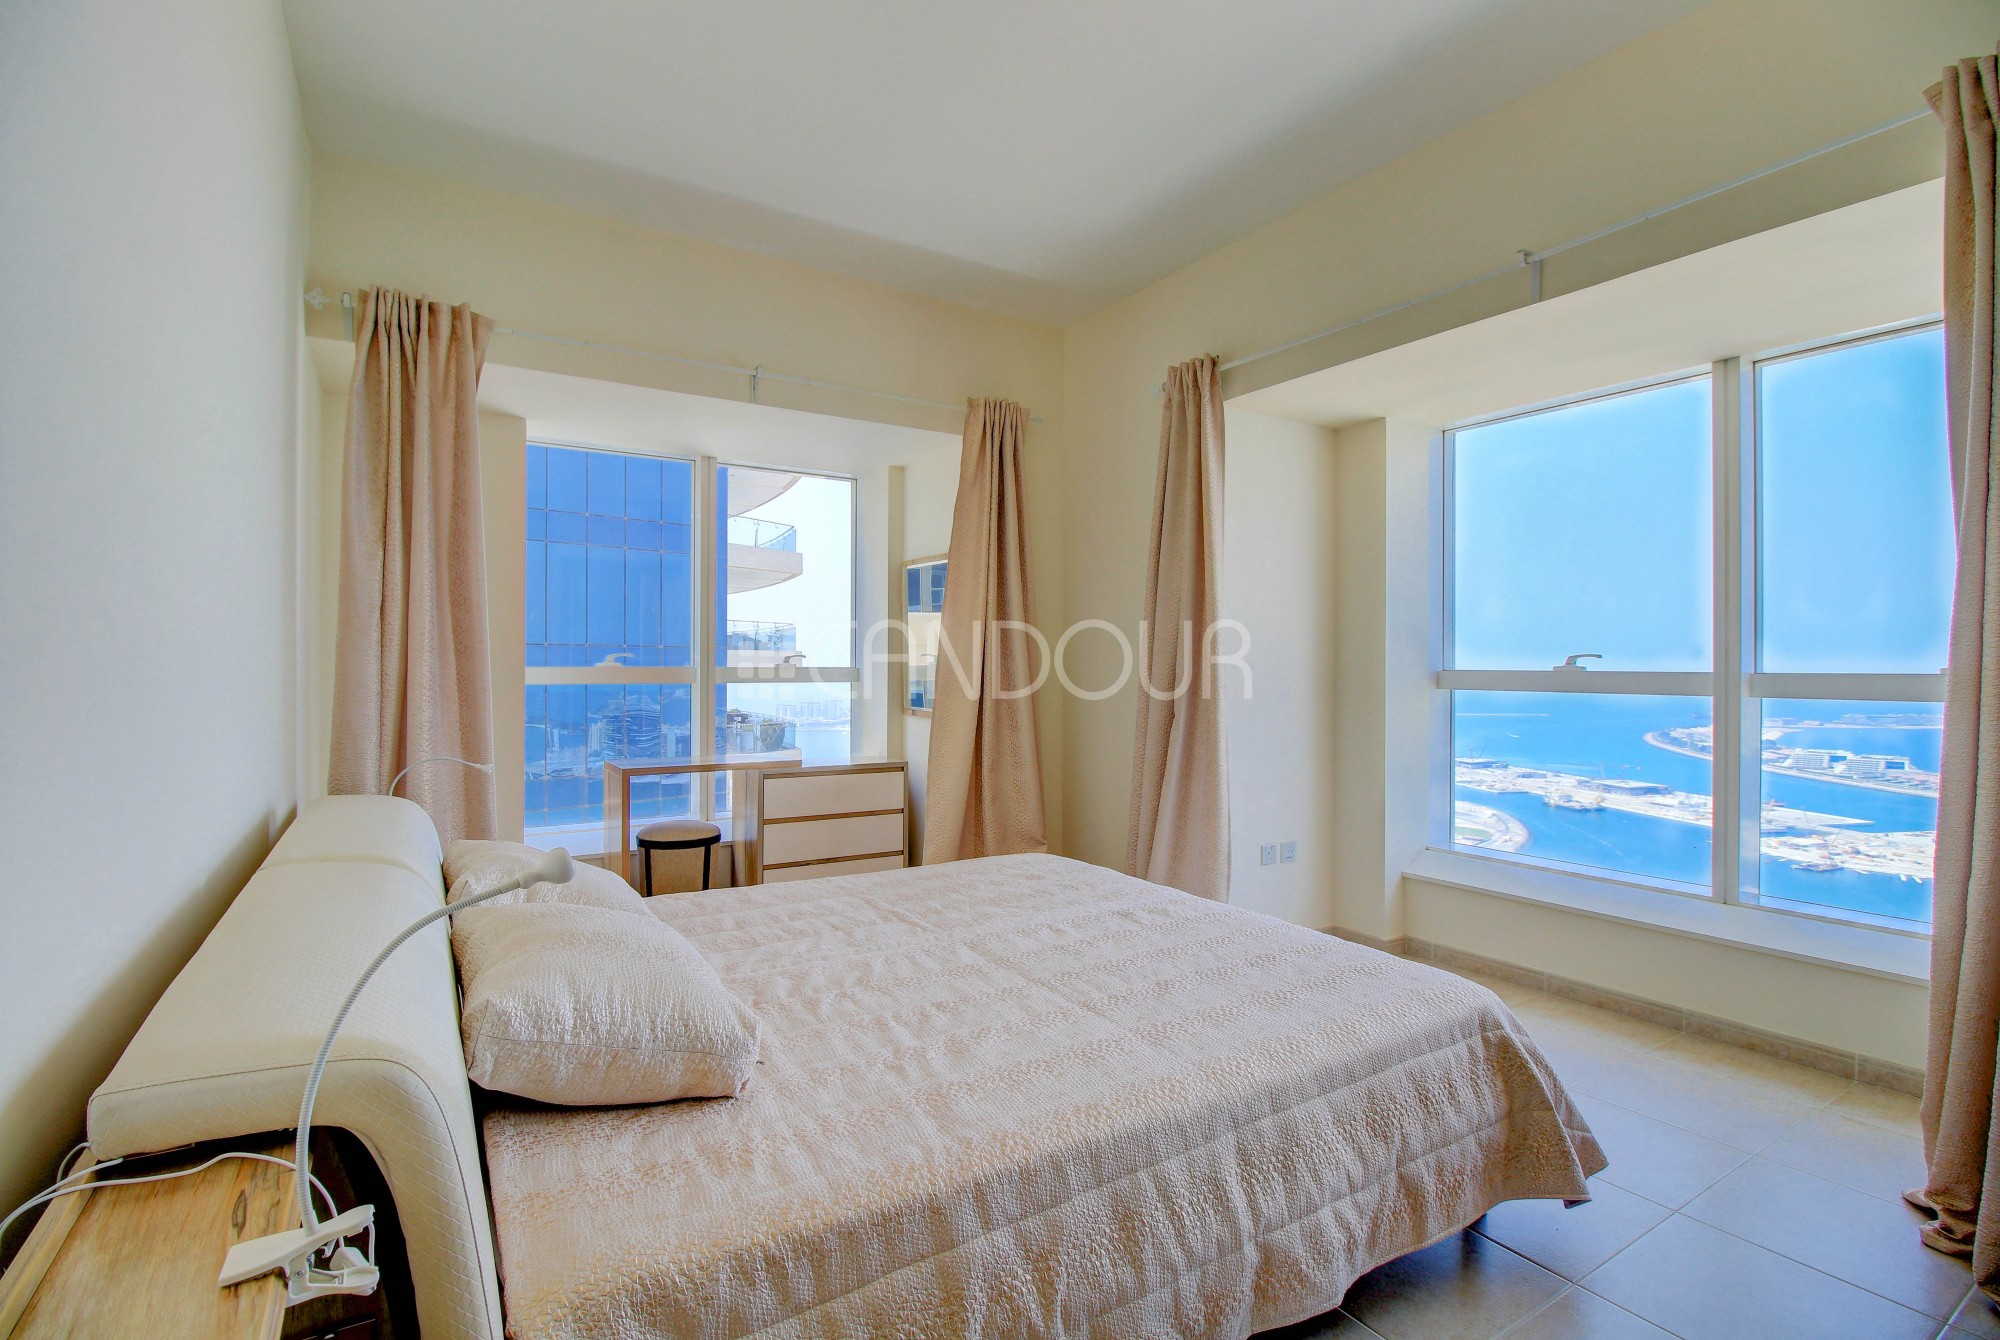 2 Bedrooms | Fully Furnished | On High Floor